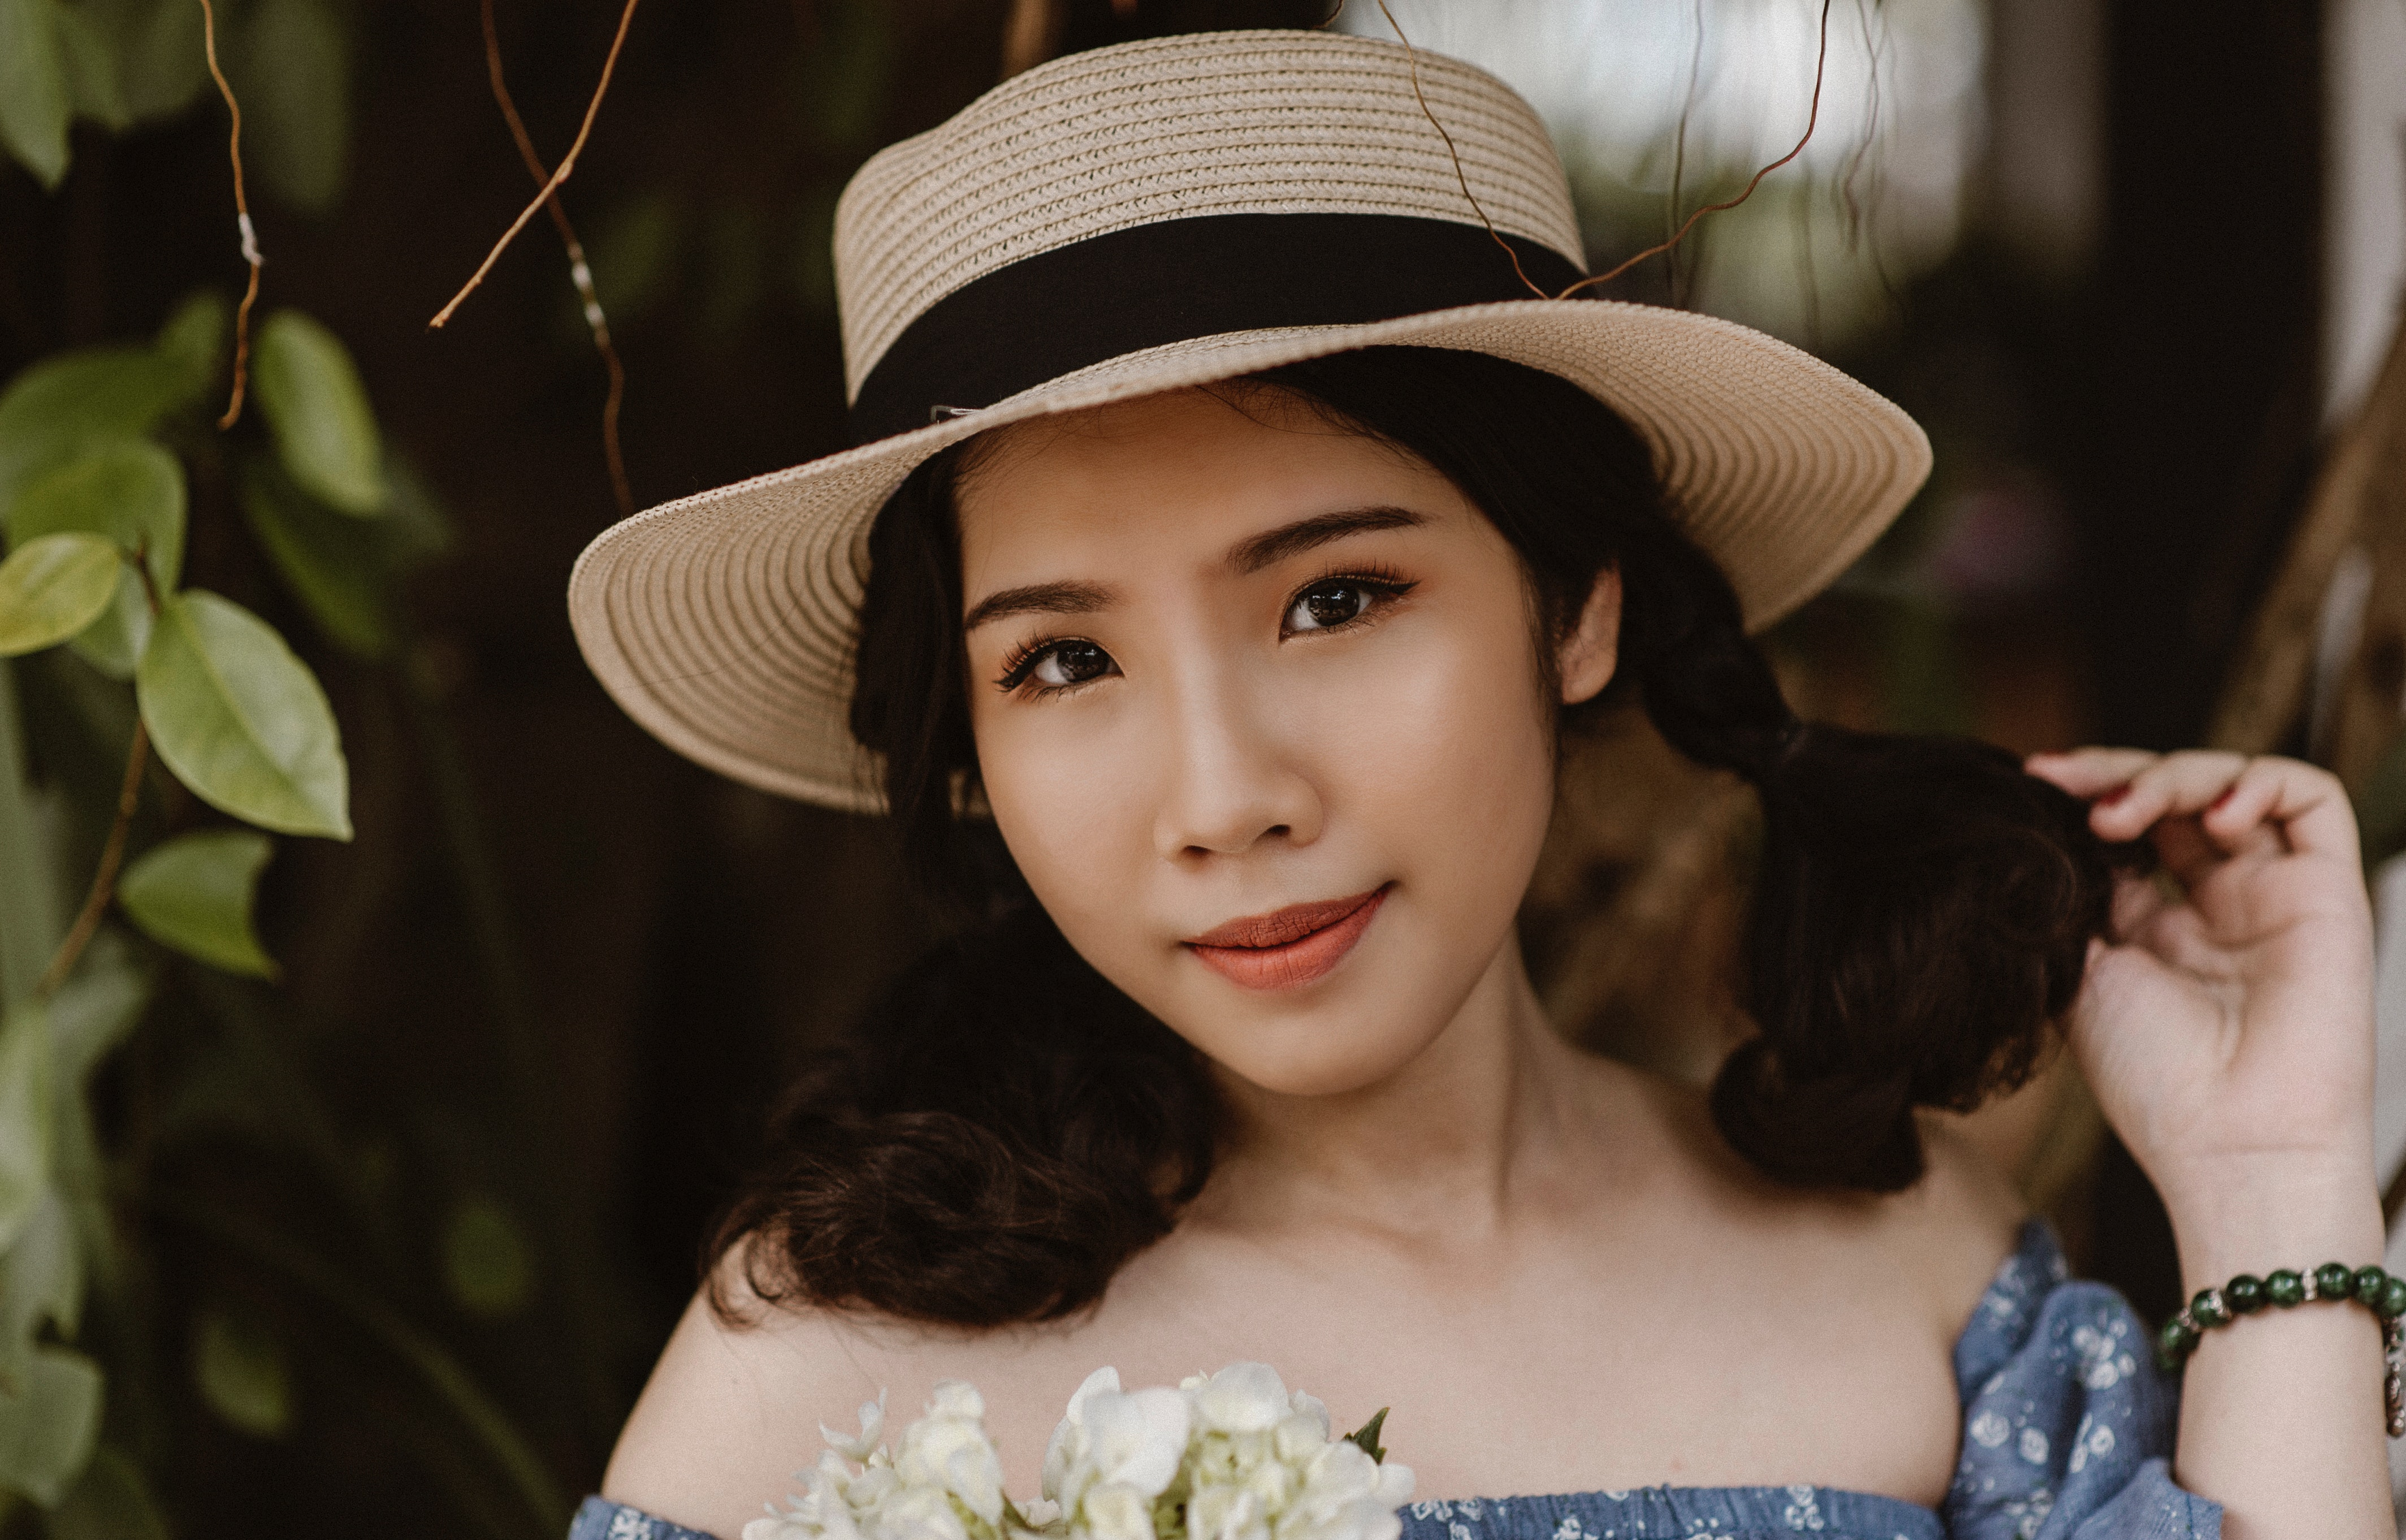 Focus photography of woman in brown sunhat near vine plant